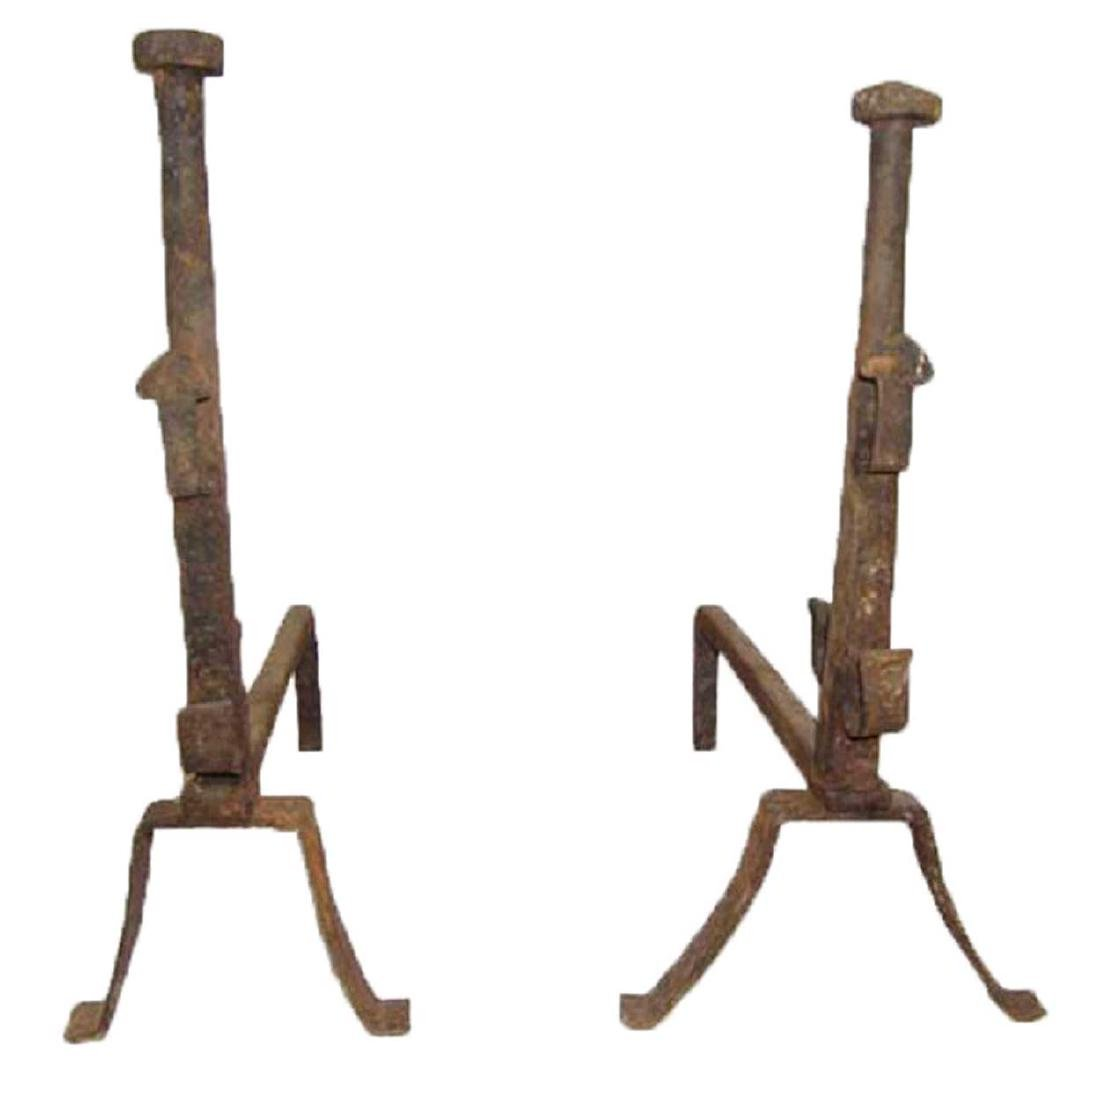 Pair of French Provincial Wrought Iron Andirons